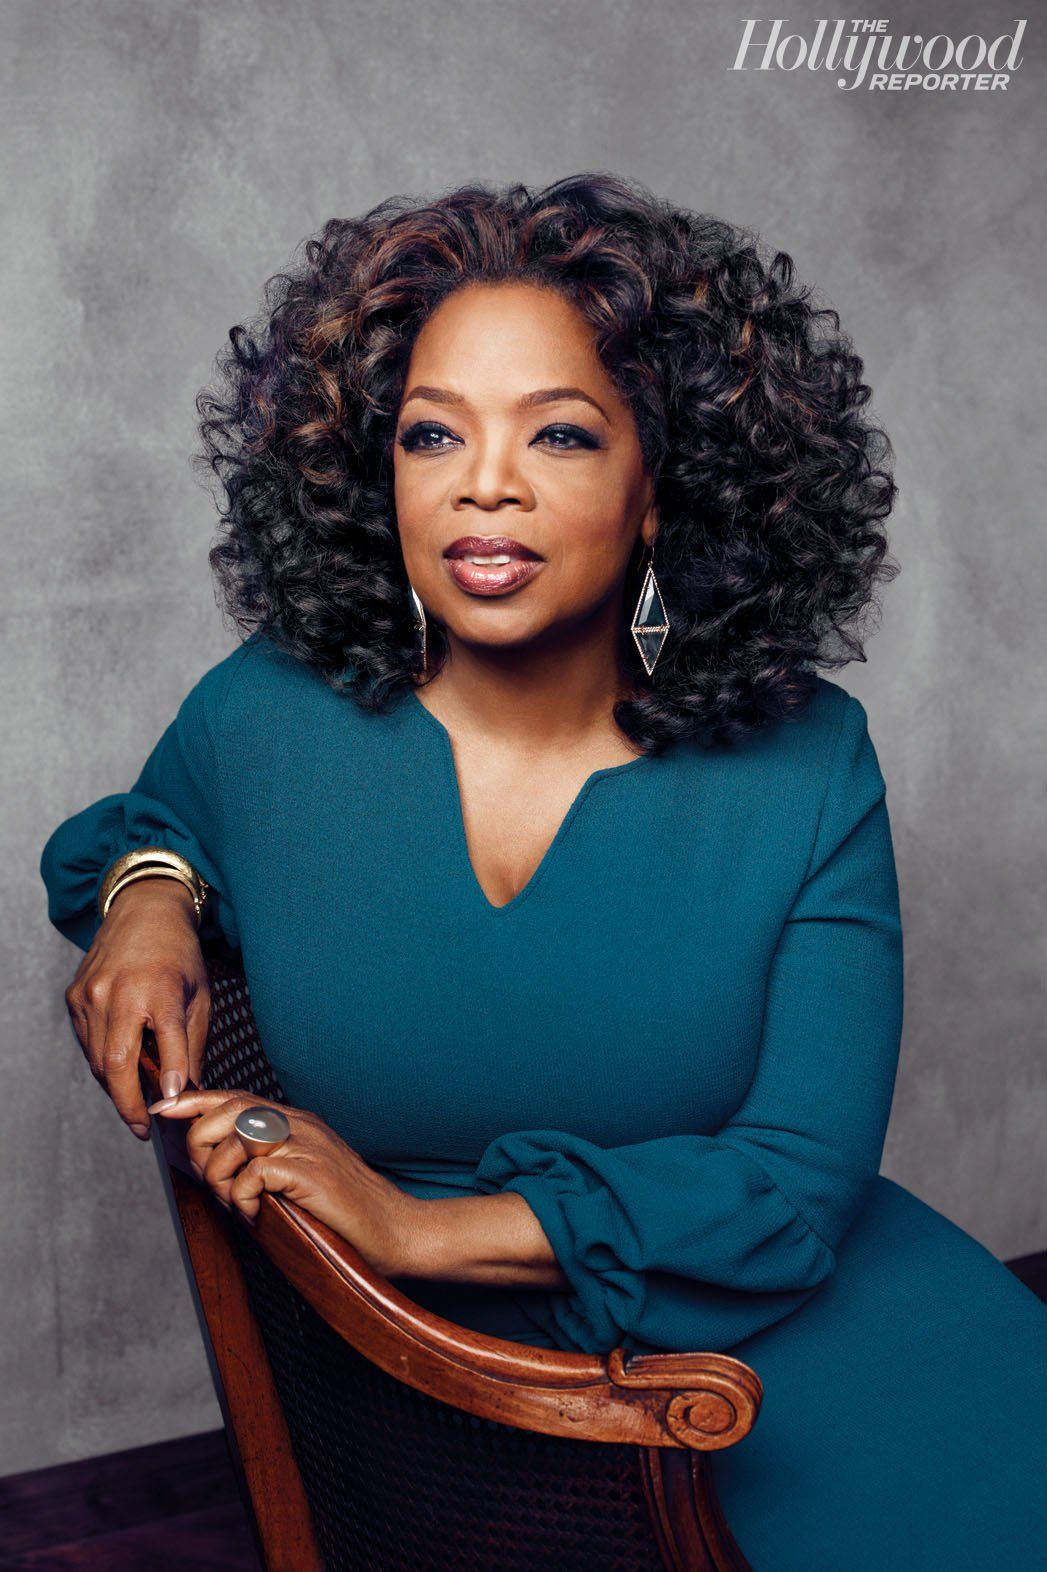 Images About Oprah Winfrey On Pinterest Celebrity Couples caddefac Oprah Winfrey